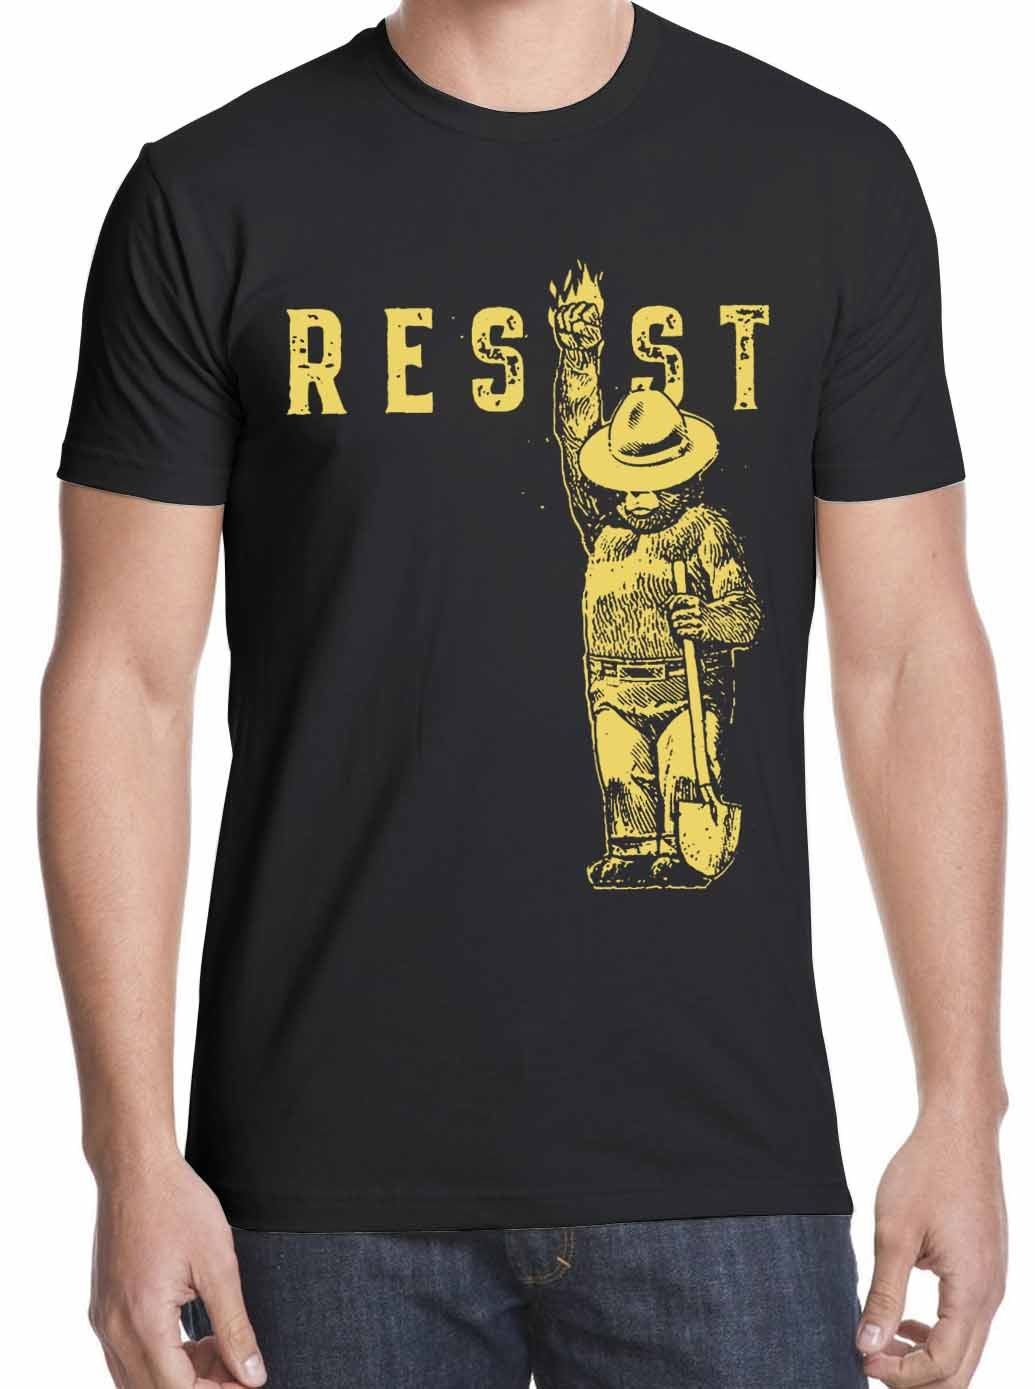 New Smokey Says, Resist Men's T-Shirt Black white free shippingFashion Summer Top Tee